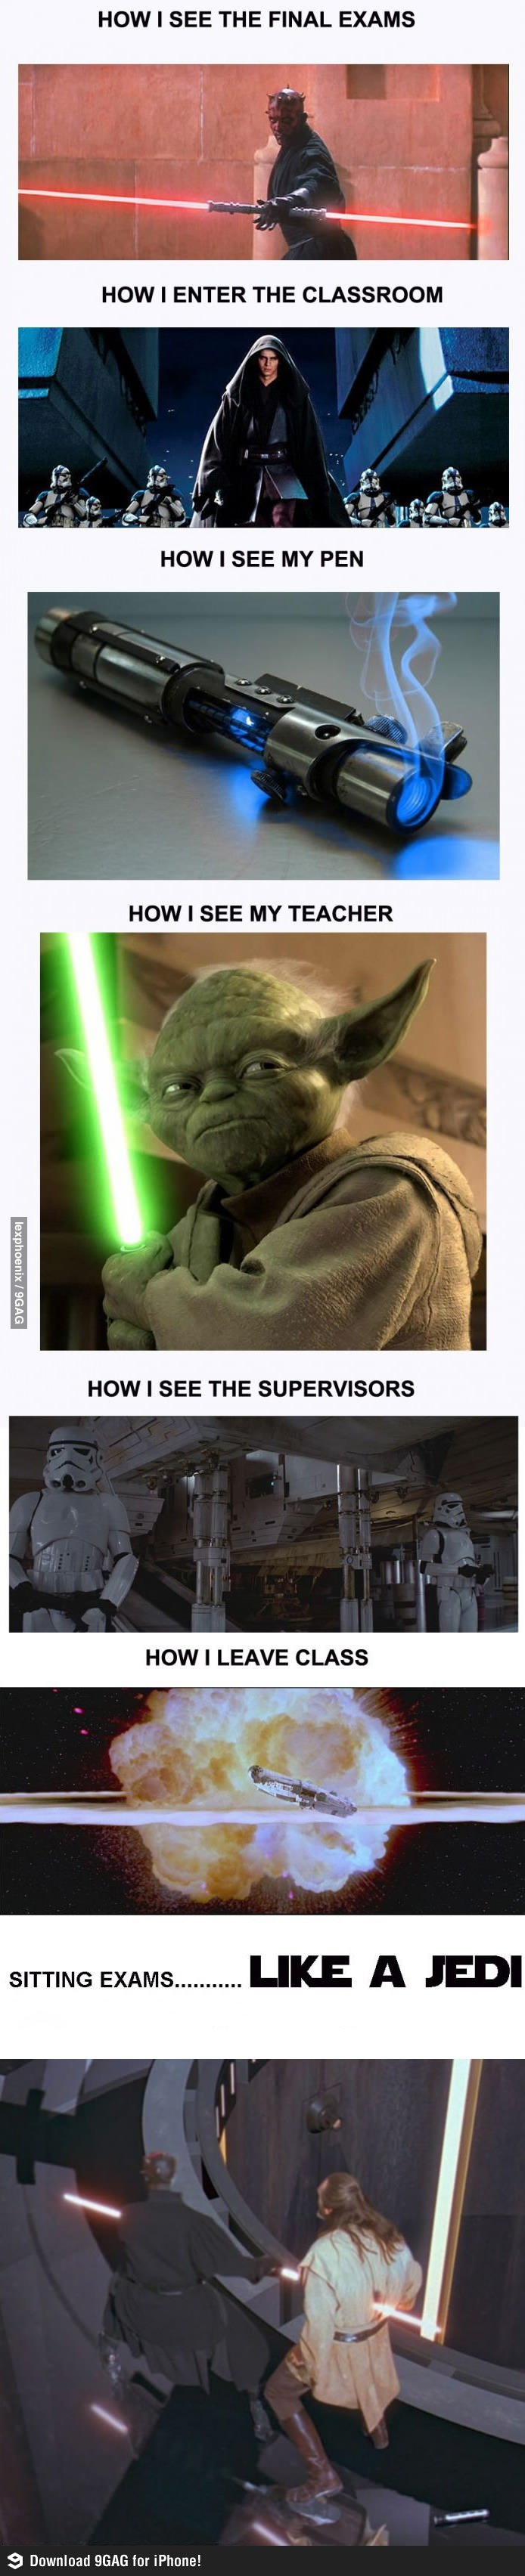 Exams Like A Jedi Funny Star Wars Memes Star Wars Humor Star Wars Pictures